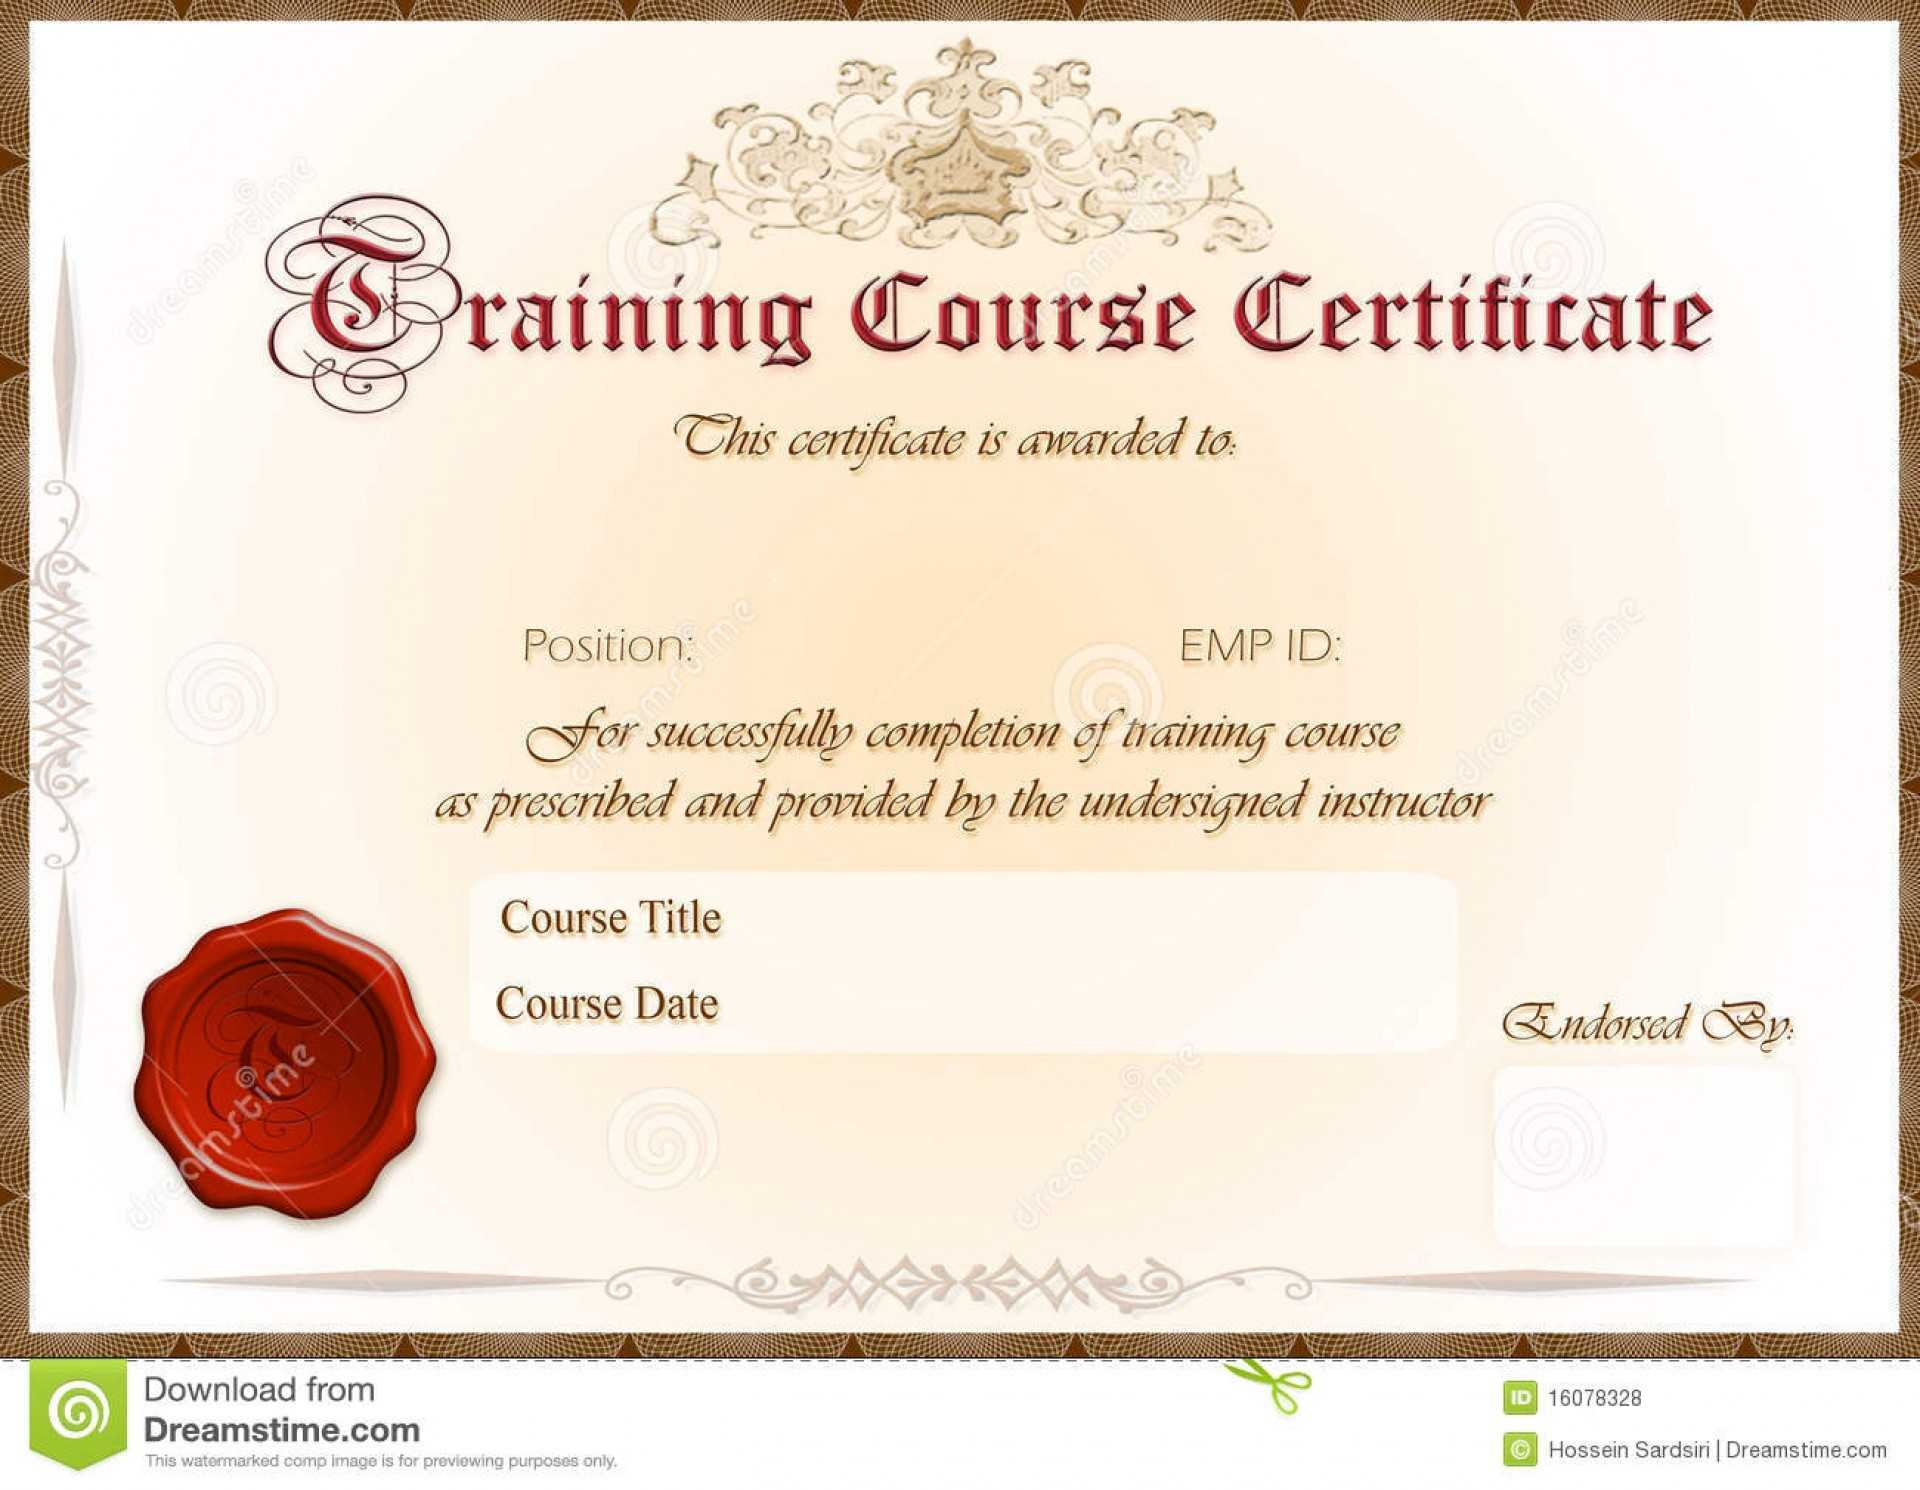 026 Template Ideas Certificates Free Gift Certificate Makes Throughout This Certificate Entitles The Bearer To Template